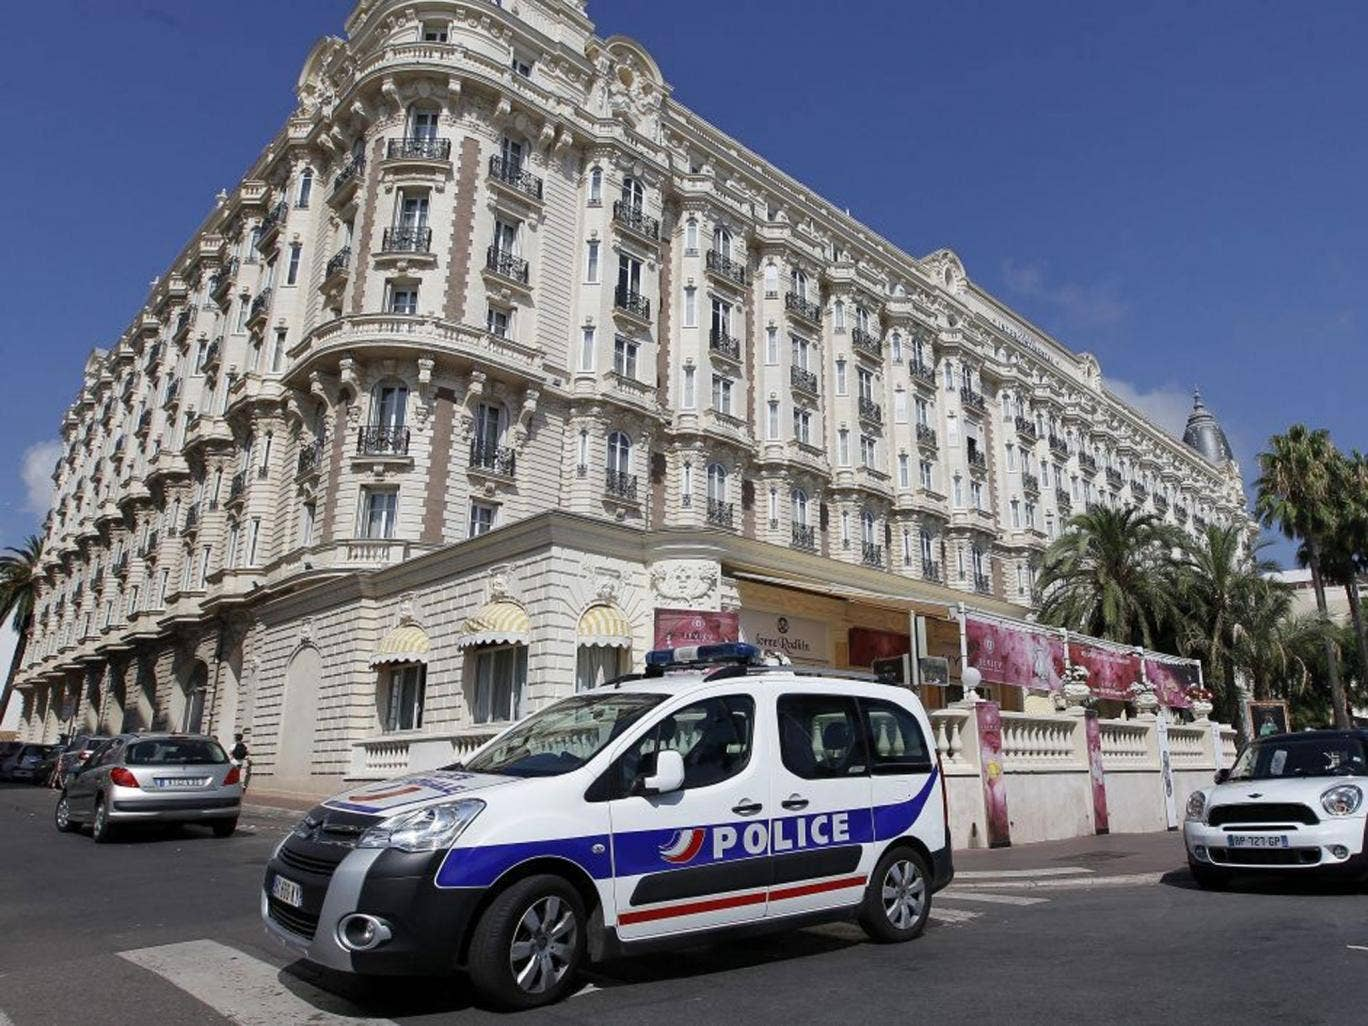 A police car stands outside the Carlton Intercontinental Hotel in Cannes